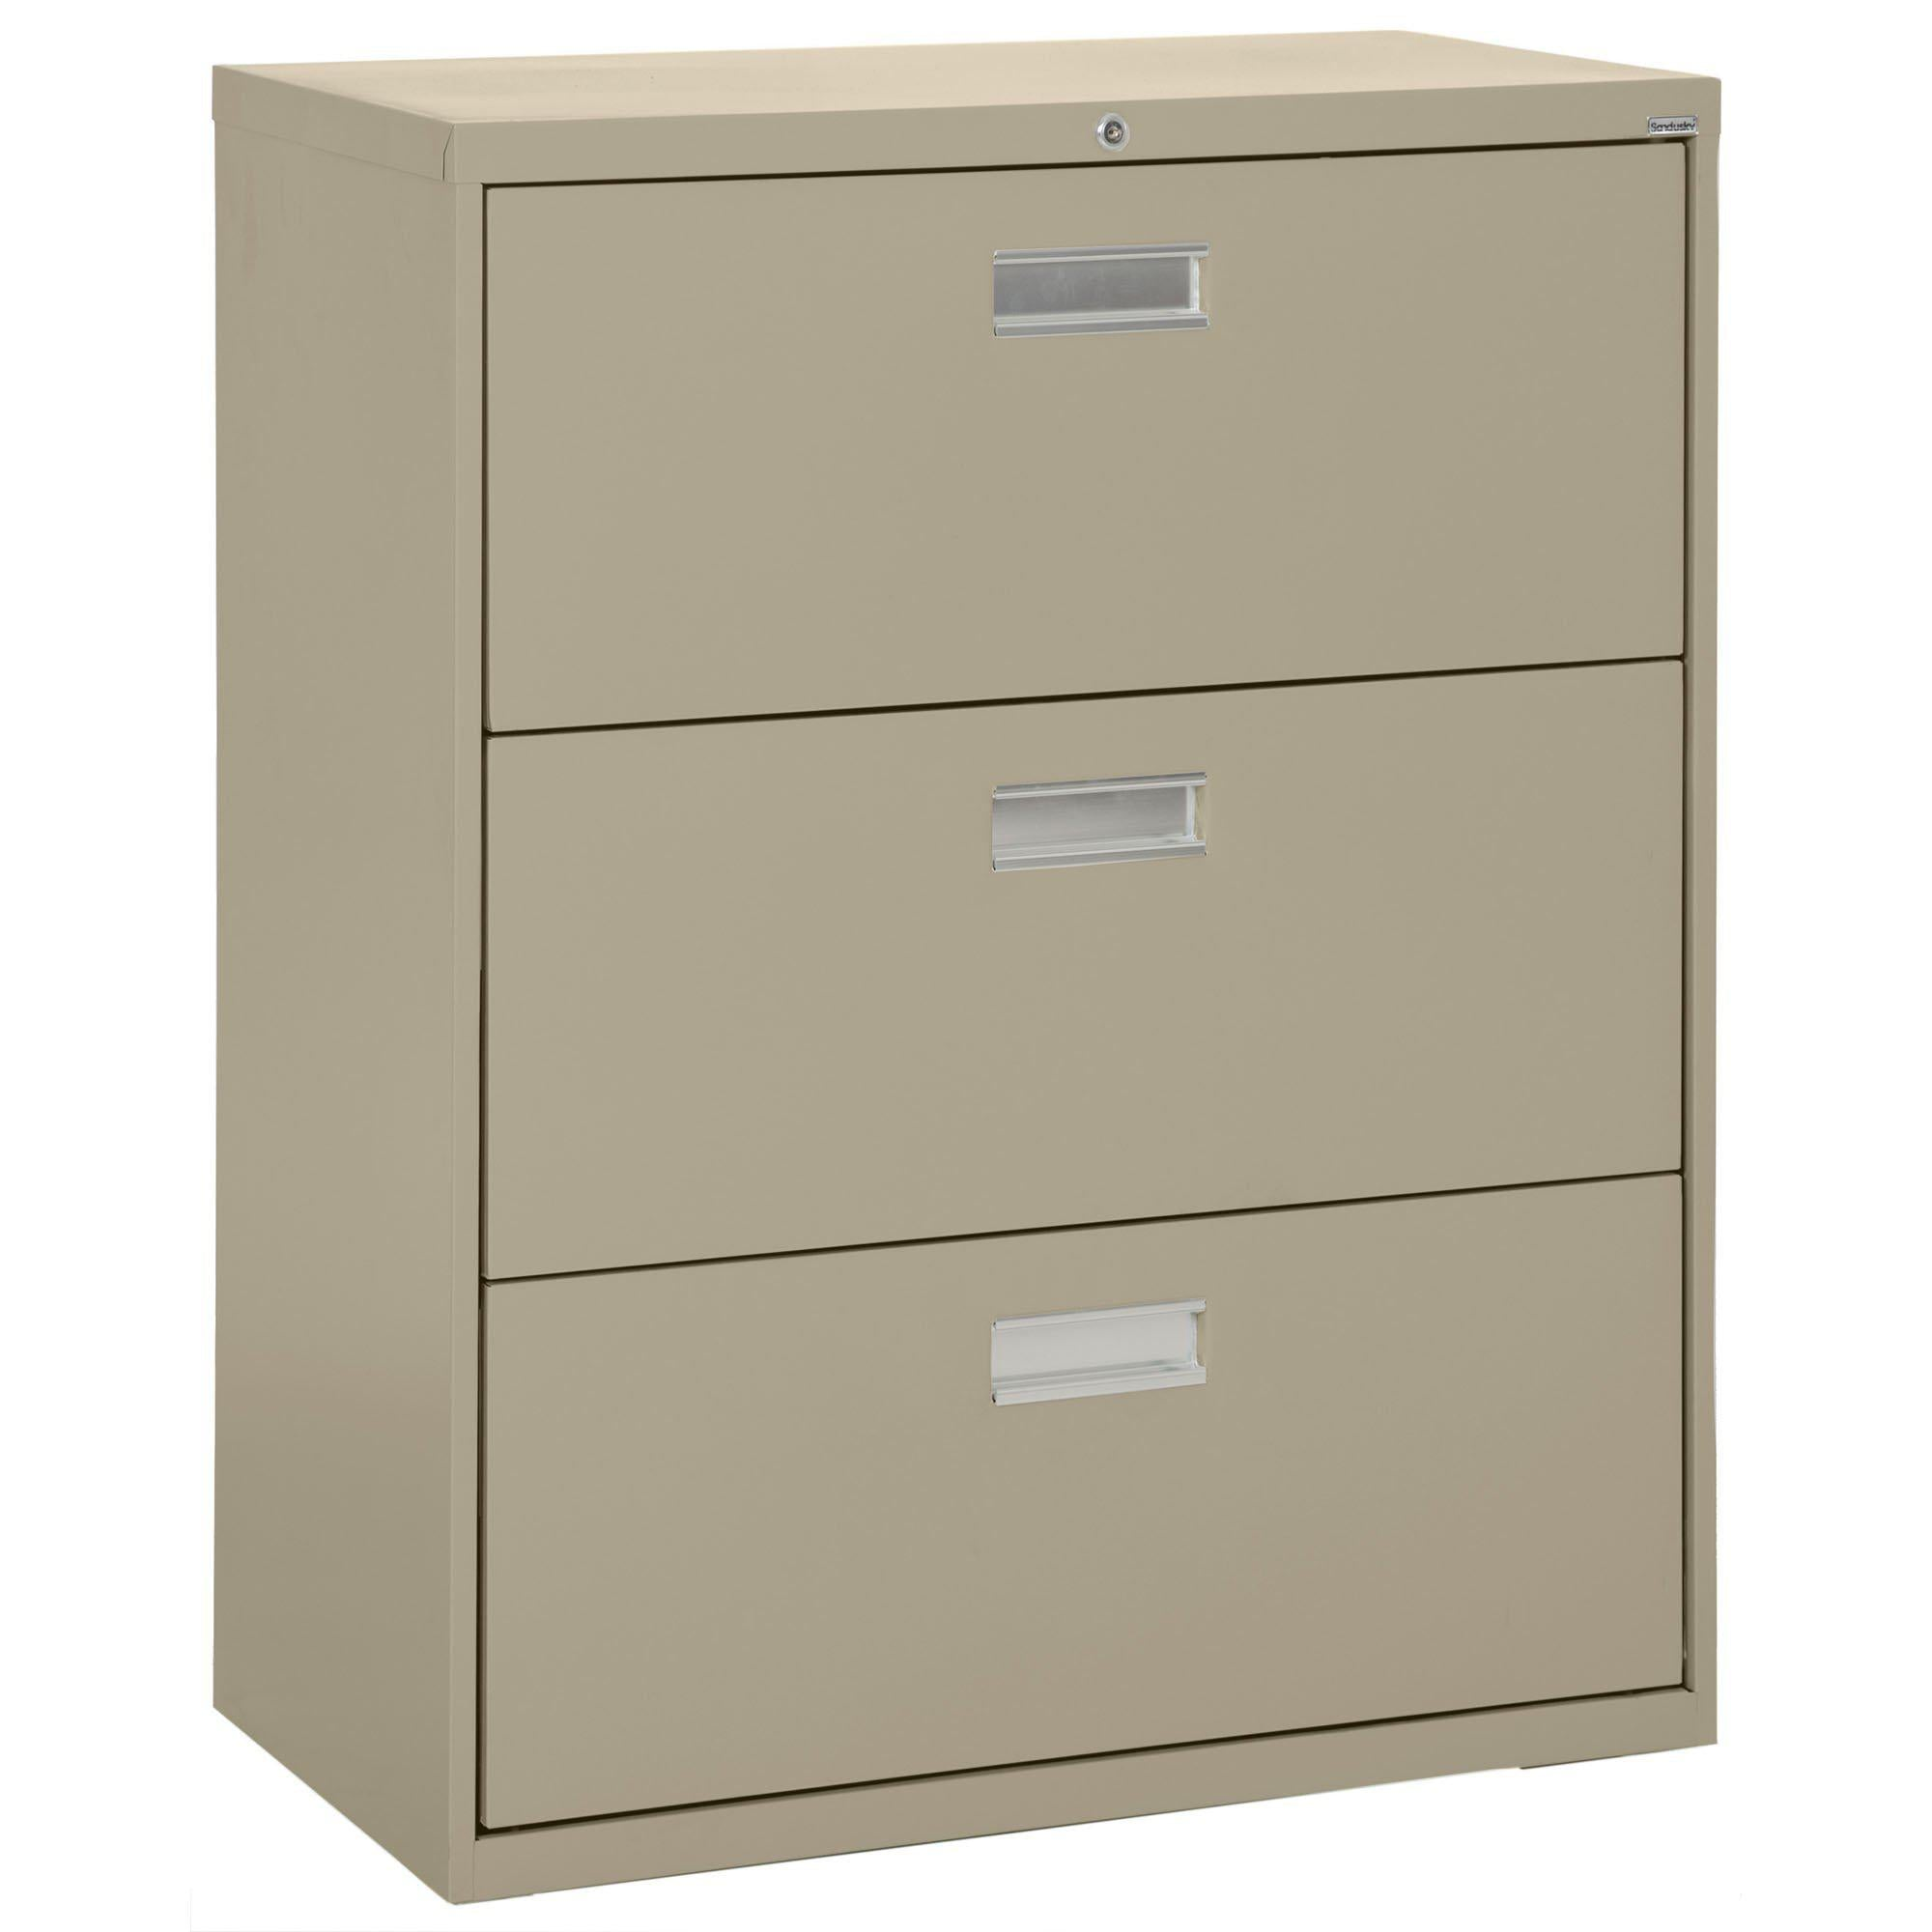 600 Series Lateral File, 3 Drawer, 36 x 19.25 x 40.875, Tropic Sand